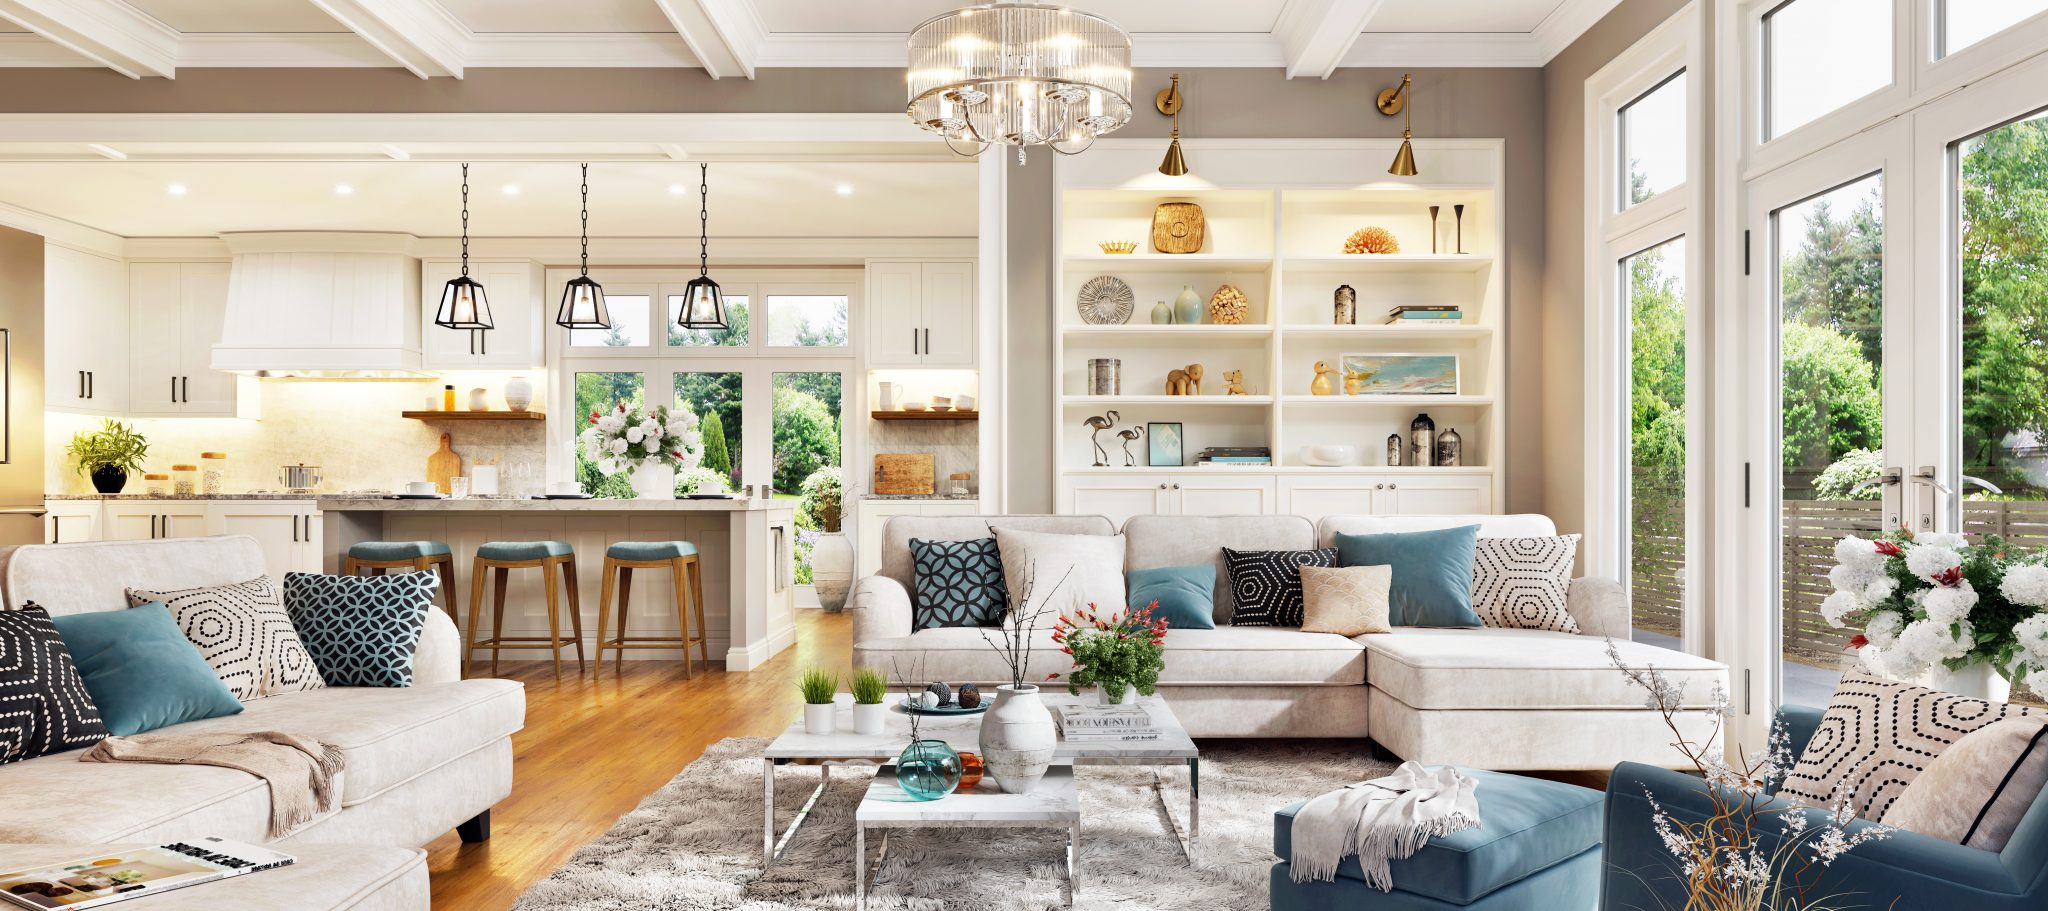 Home Décor: Stay on-trend in 2020 with the latest design ideas for your home